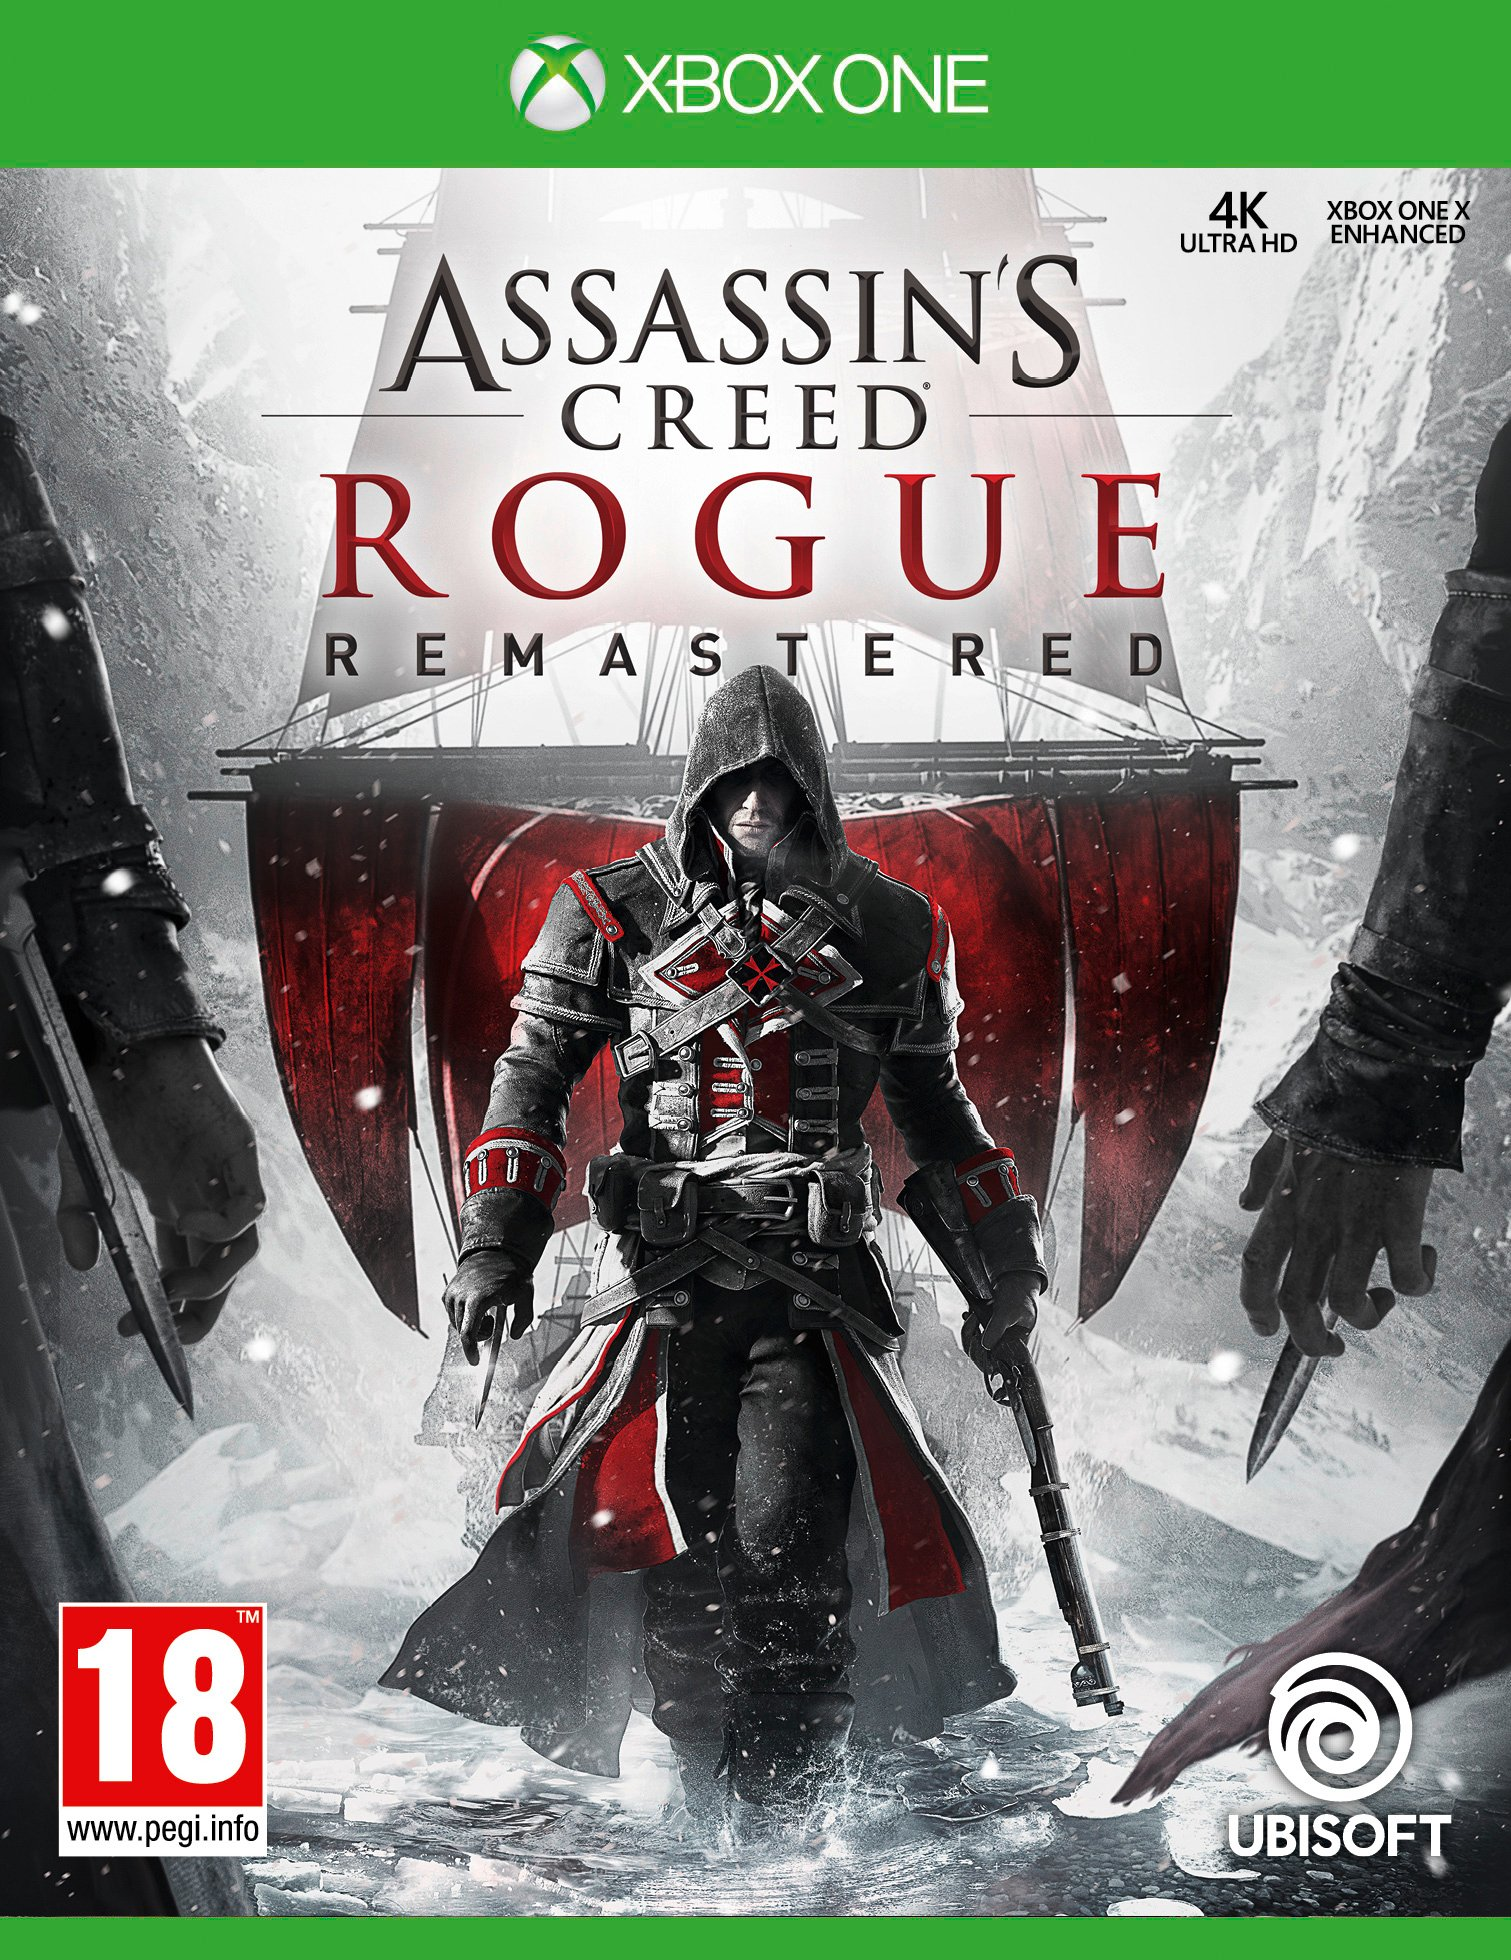 Kjop Assassin S Creed Rogue Remastered Xbox One Engelsk